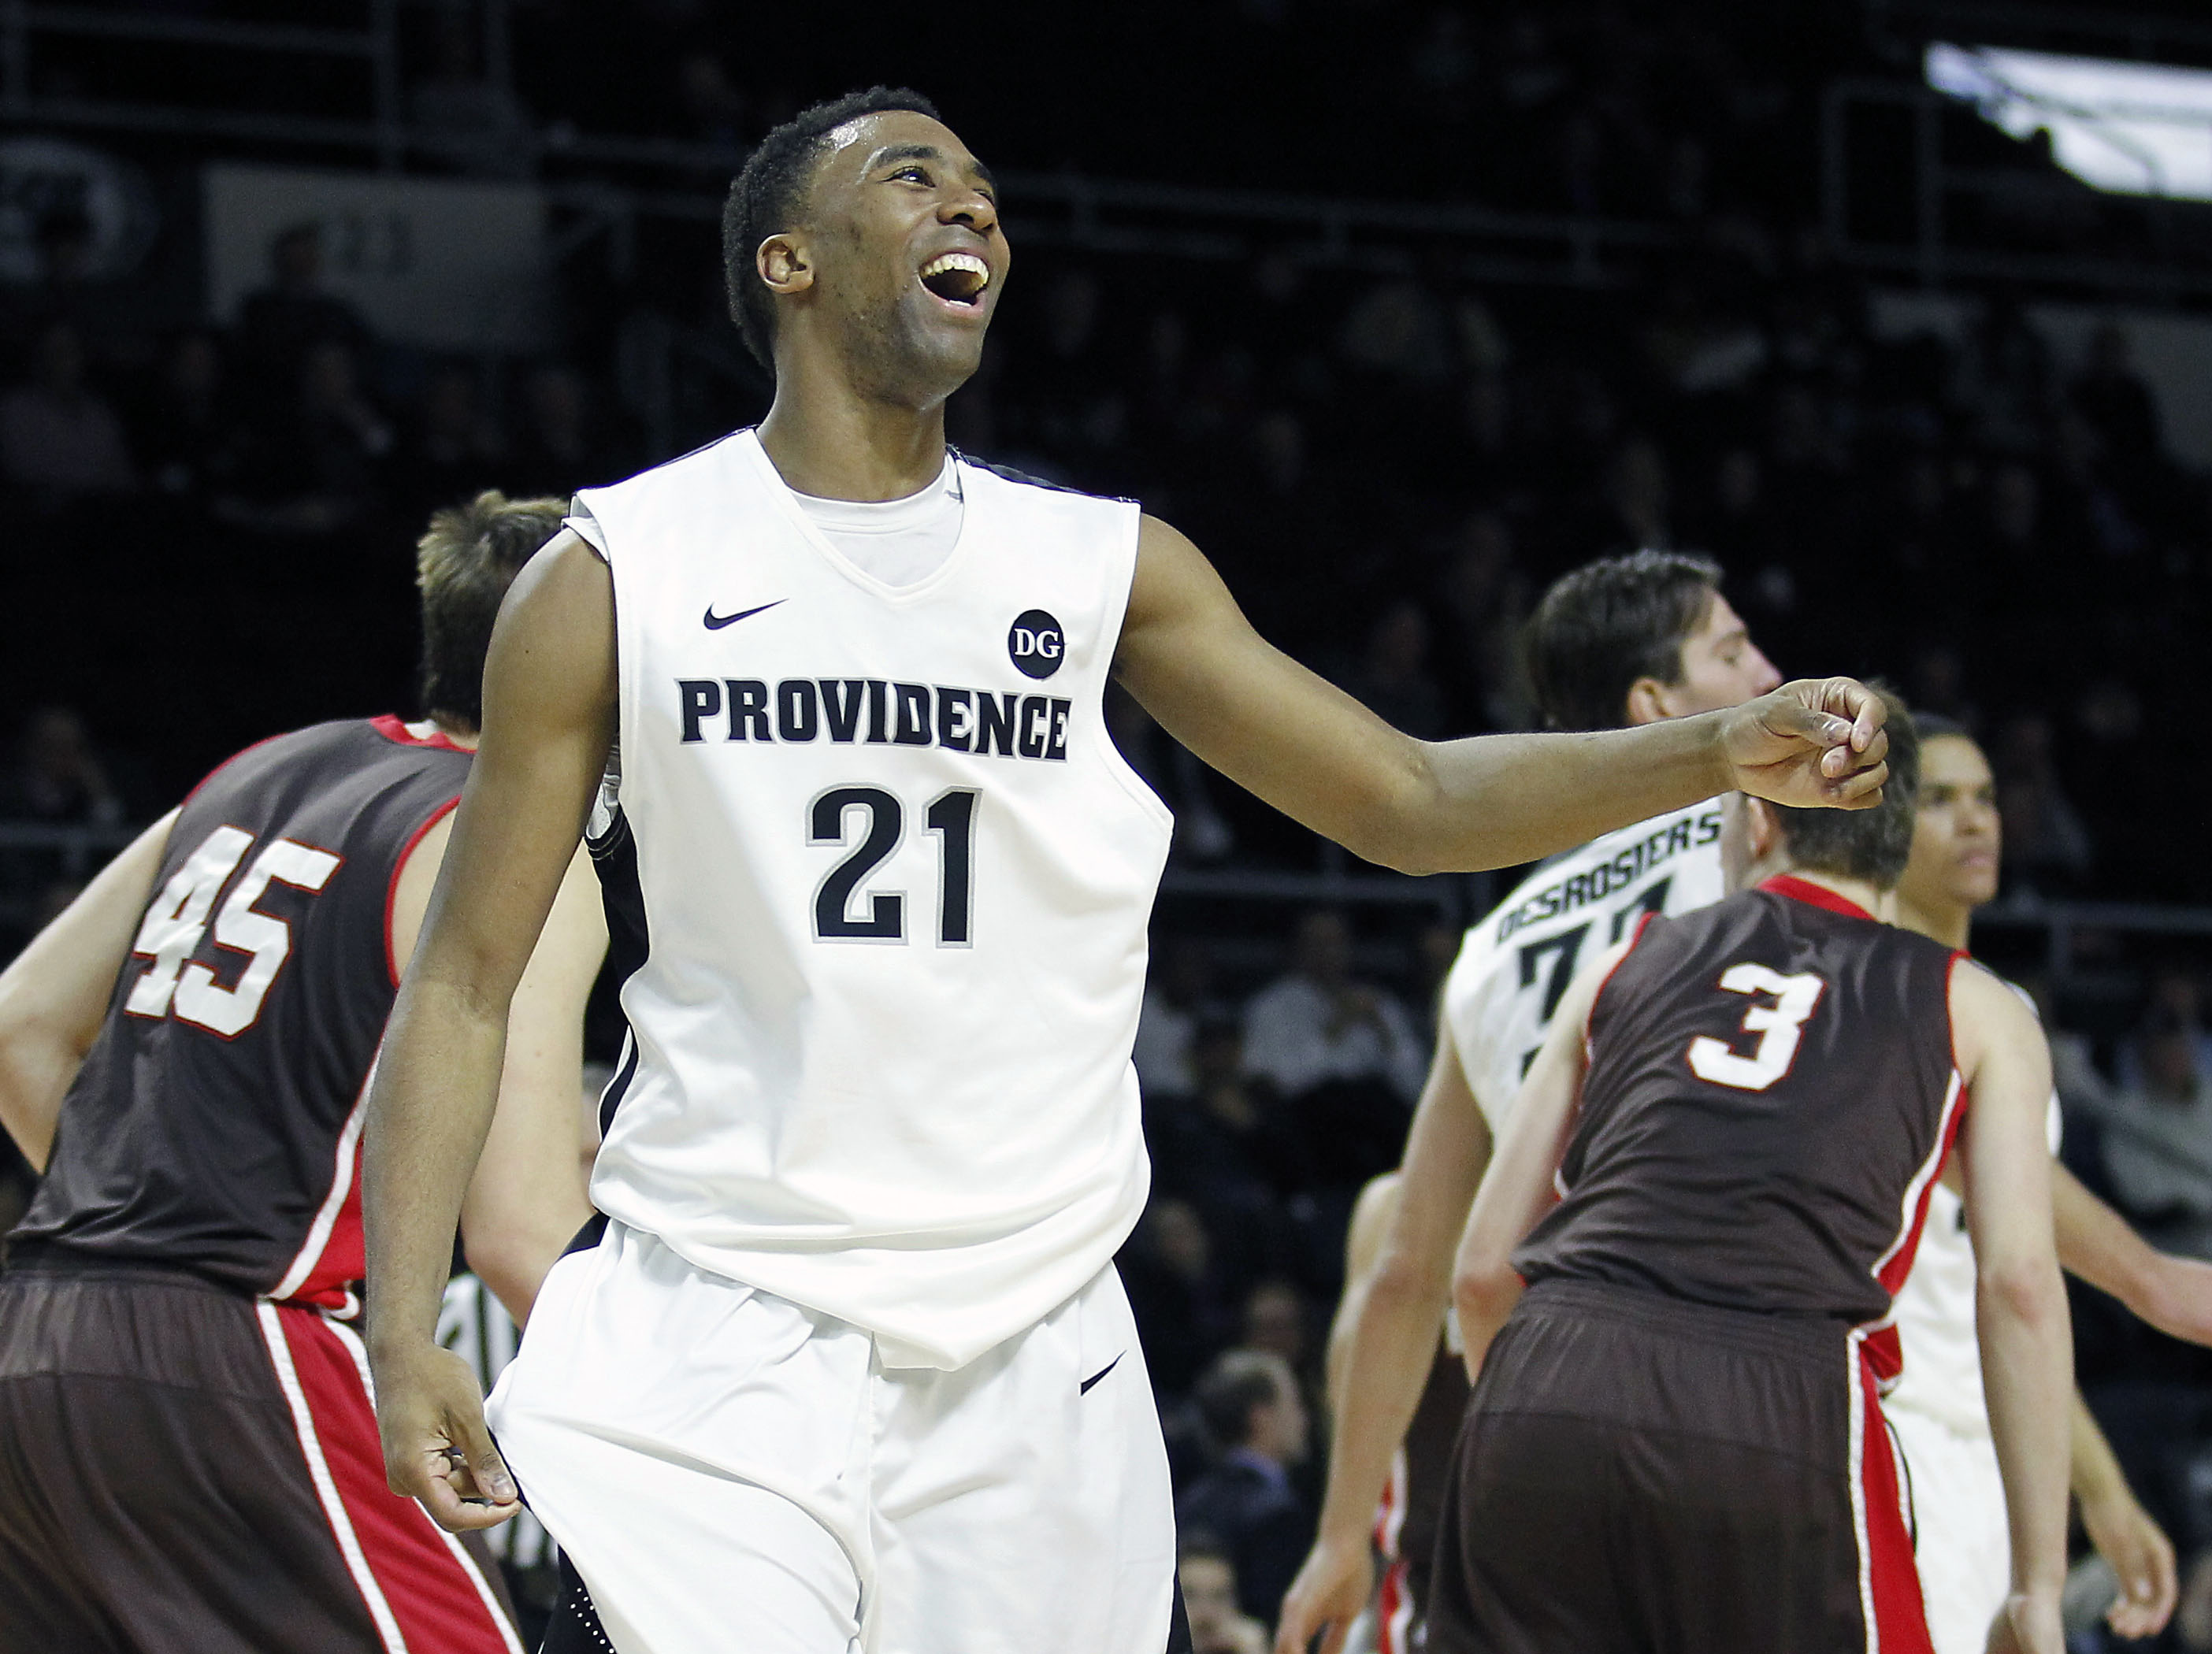 Providence Friars guard Jalen Lindsey (21) reacts to a foul called on him (USATSI)